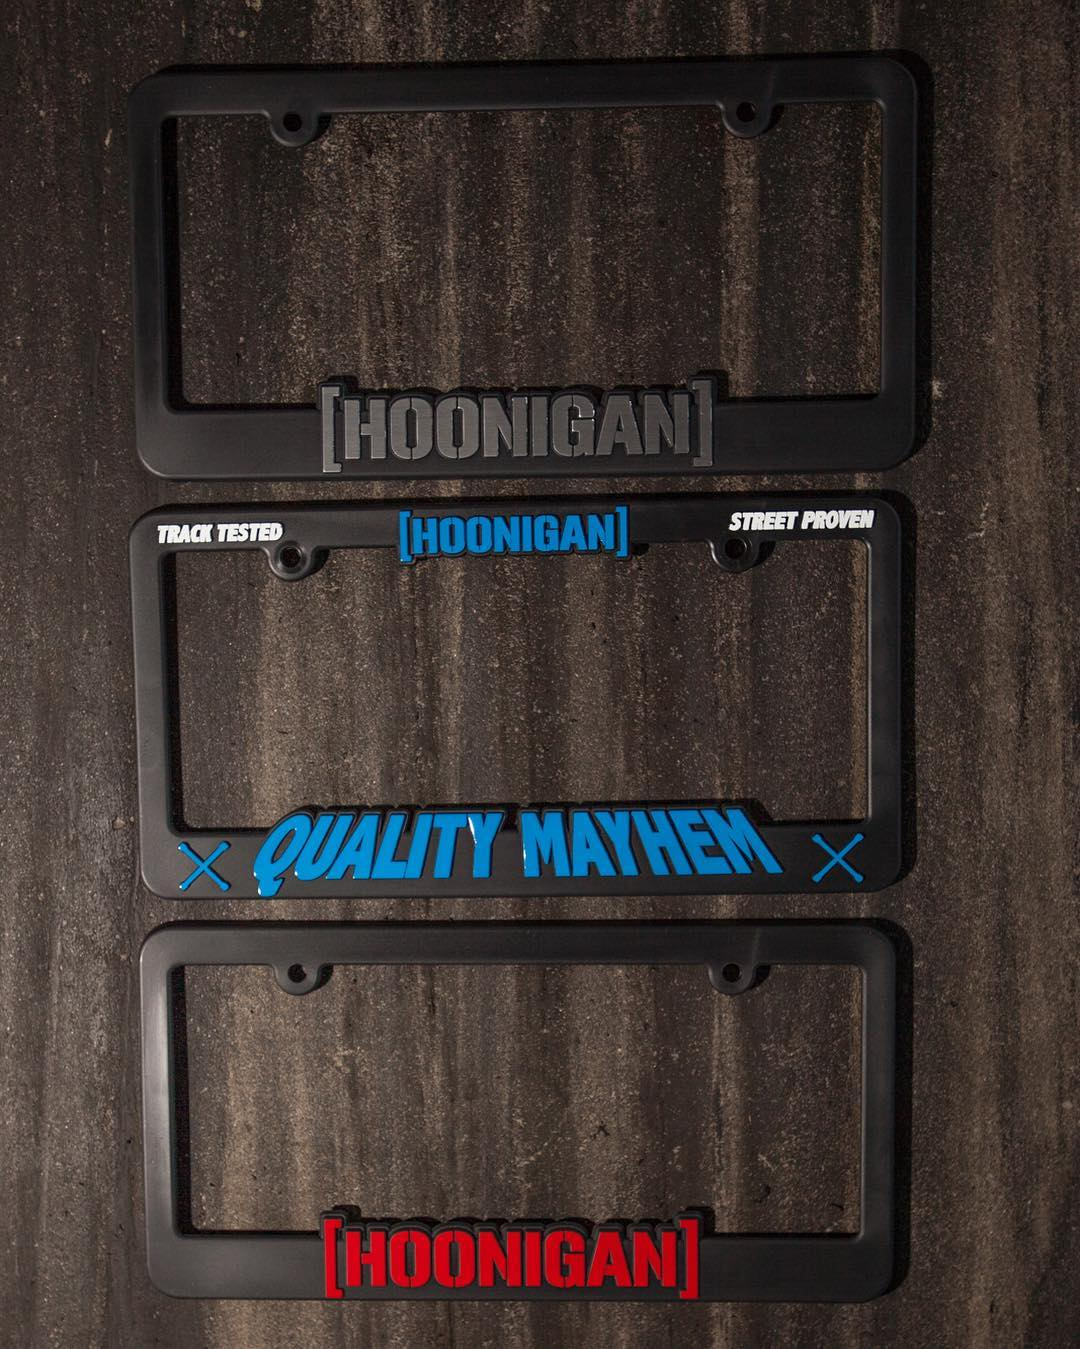 Track Tested X Street Proven.  Our recipe for quality mayhem. Accessorize the whip with one of our plate frames plates. #hooniganDOTcom.